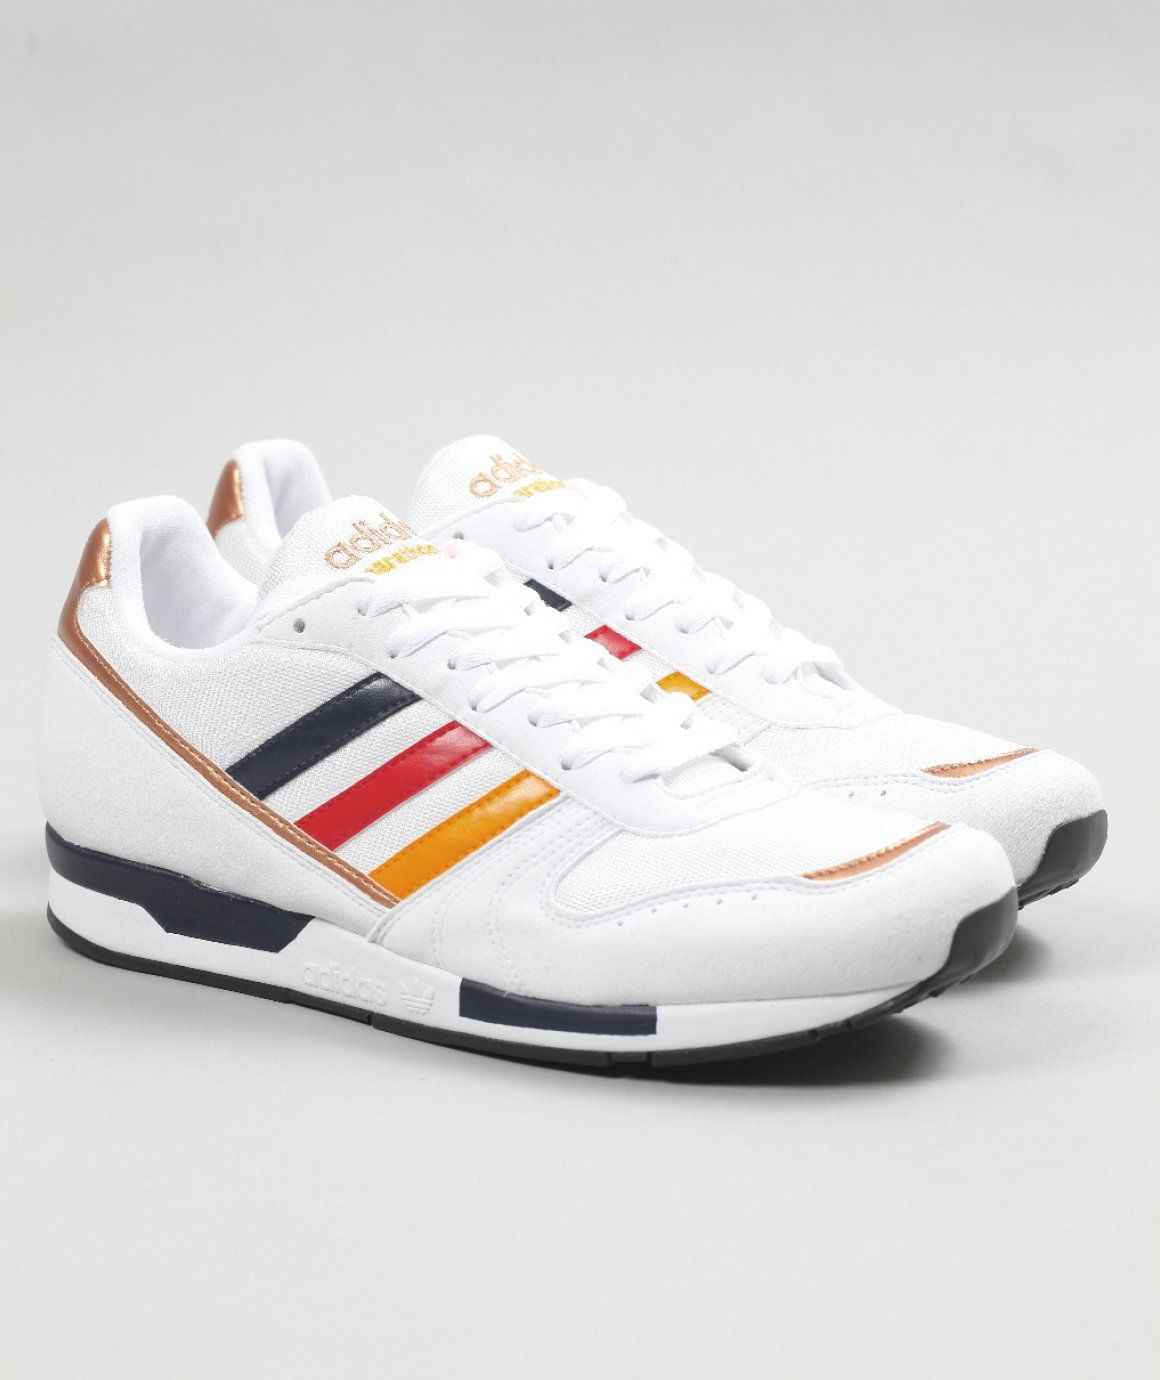 low priced e7013 7a0e0 adidas Originals - Marathon 88 | Adidas | Adidas, Adidas sneakers ...